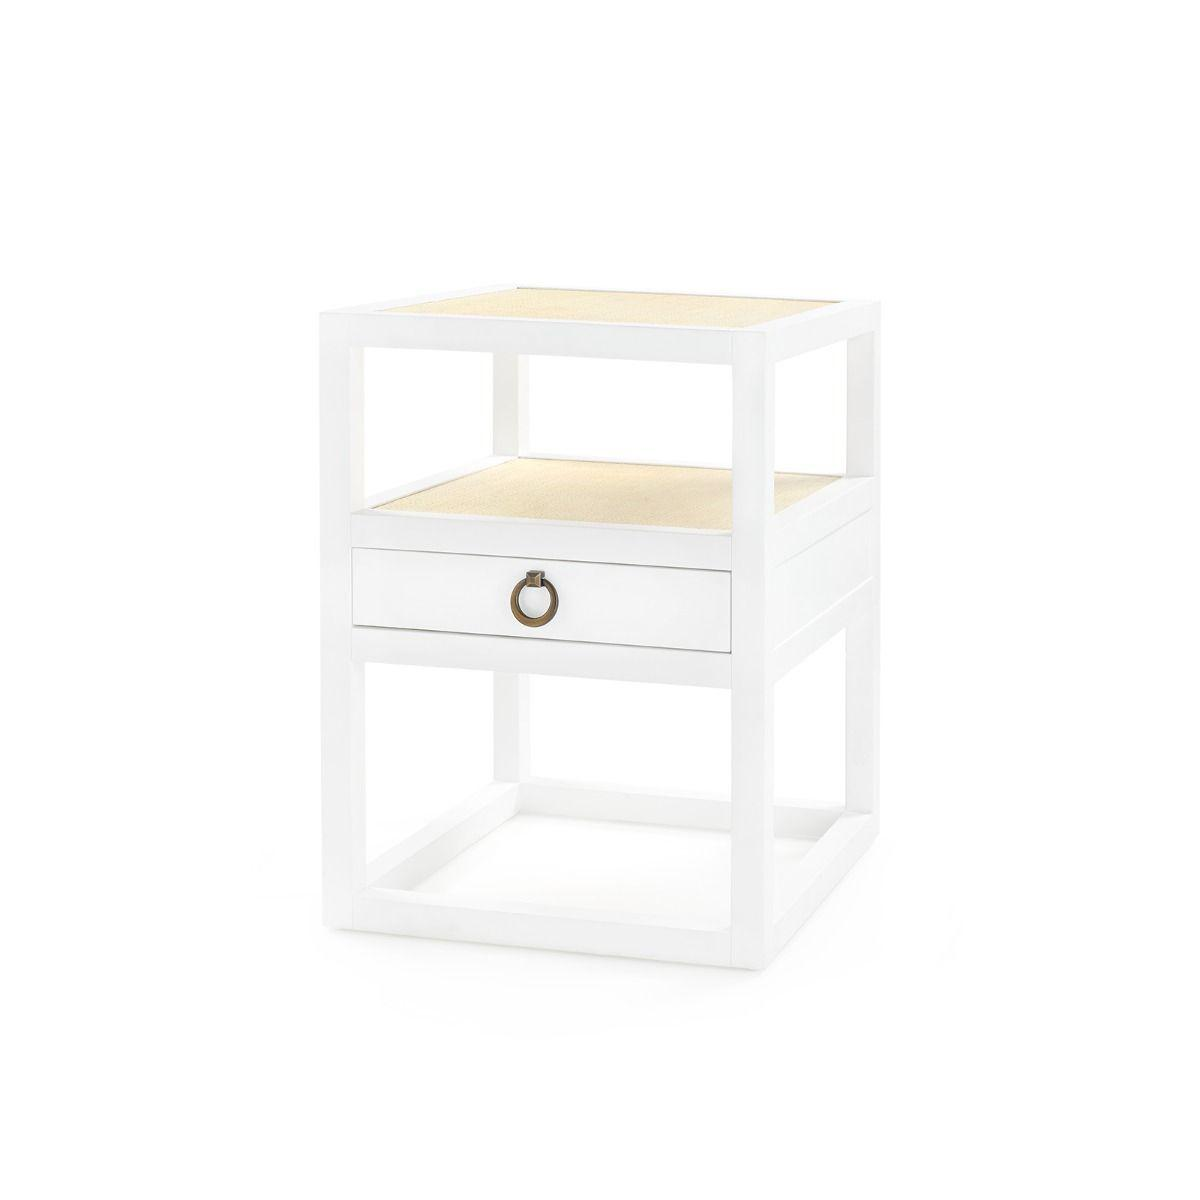 Bungalow 5 - POLO 1-DRAWER SIDE TABLE, WHITE